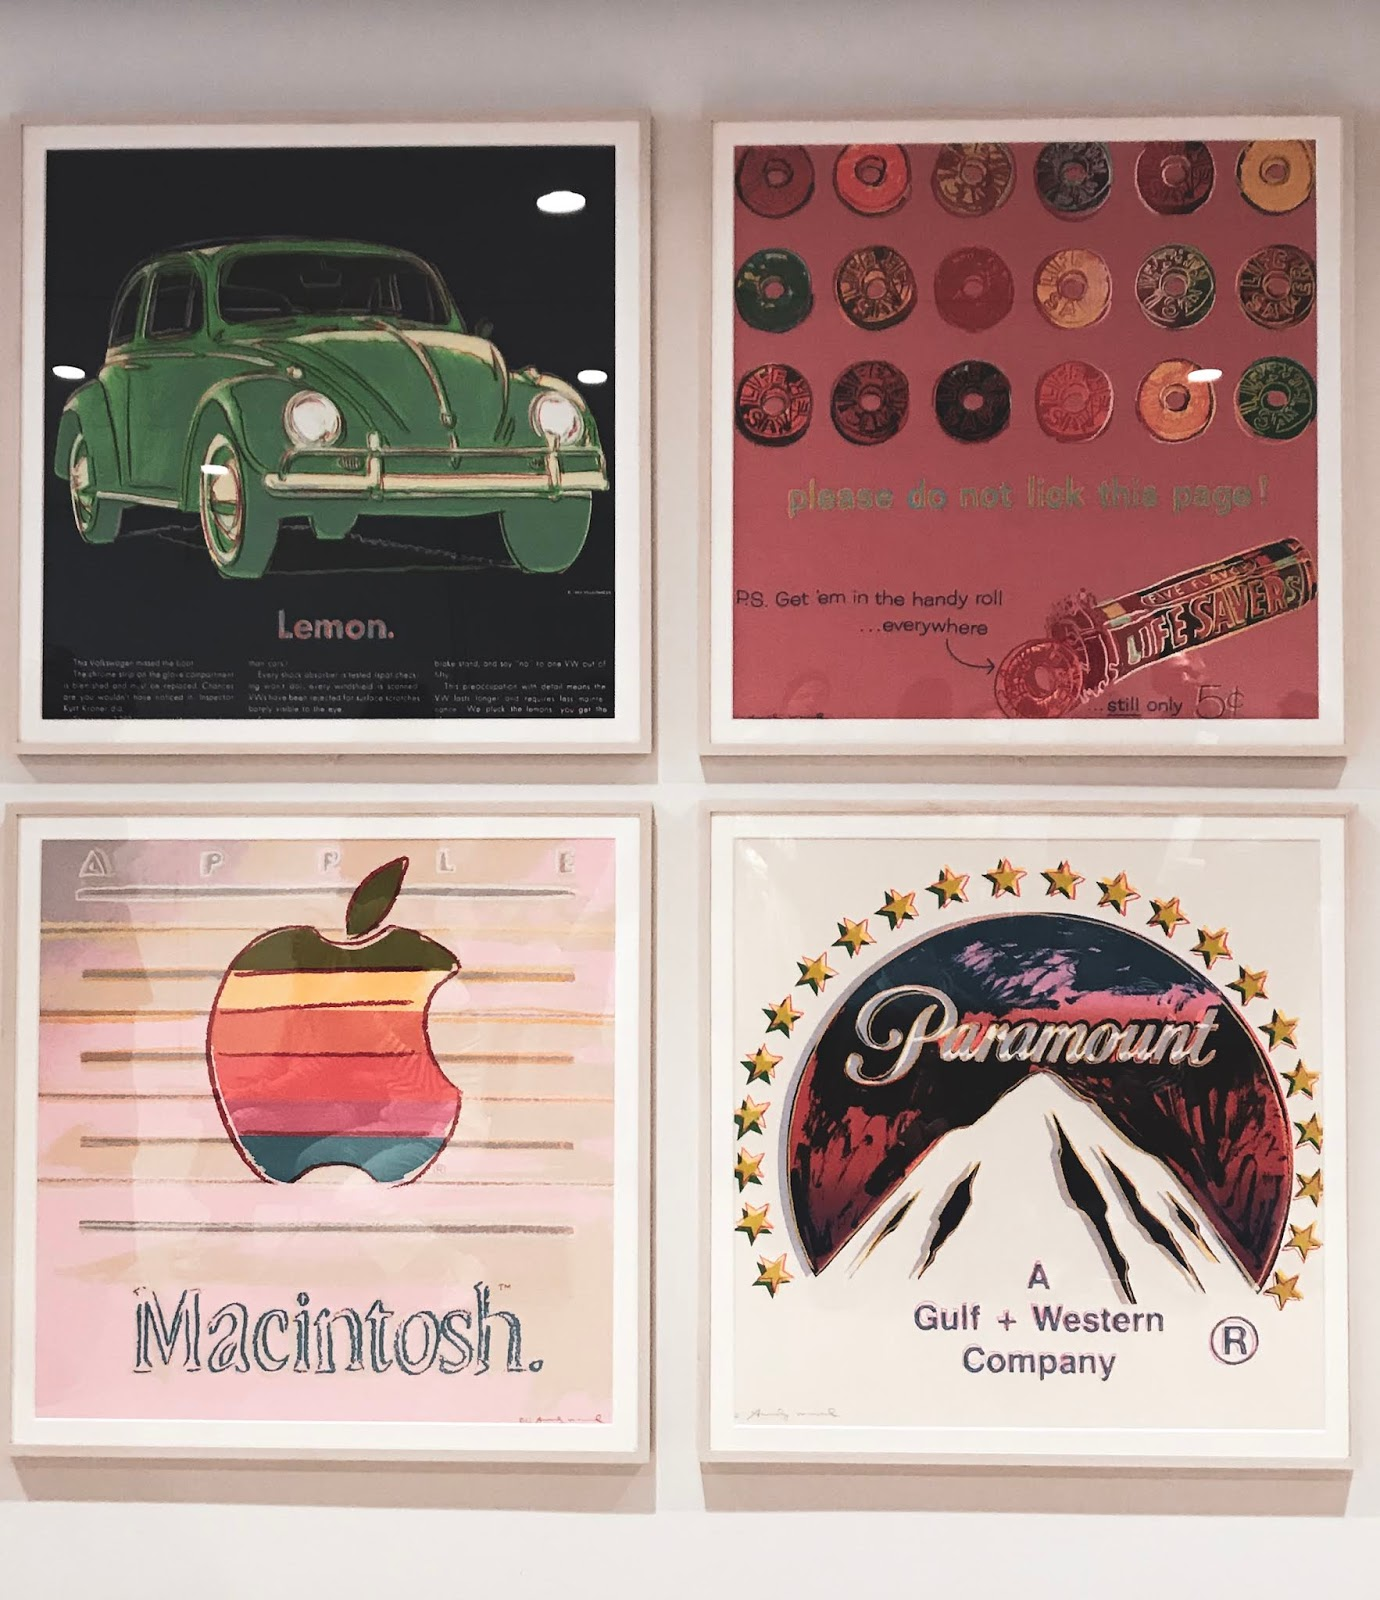 4 photoframes in Whitney Museum of American Art vintage Apple logo, Paramount logo, a car